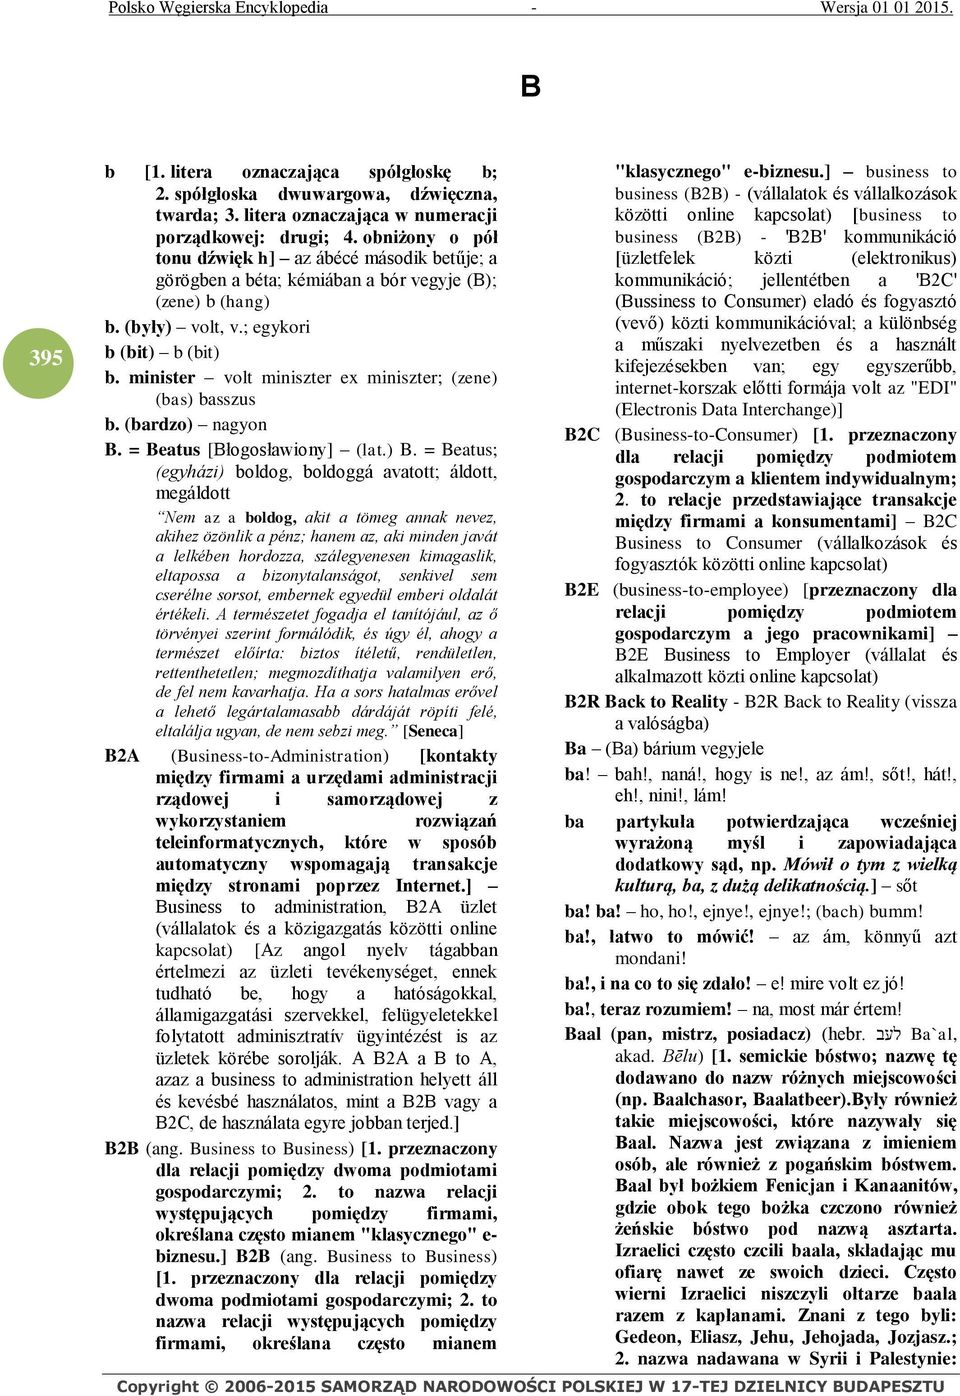 B2A (Business to Administration) [kontakty między firmami a